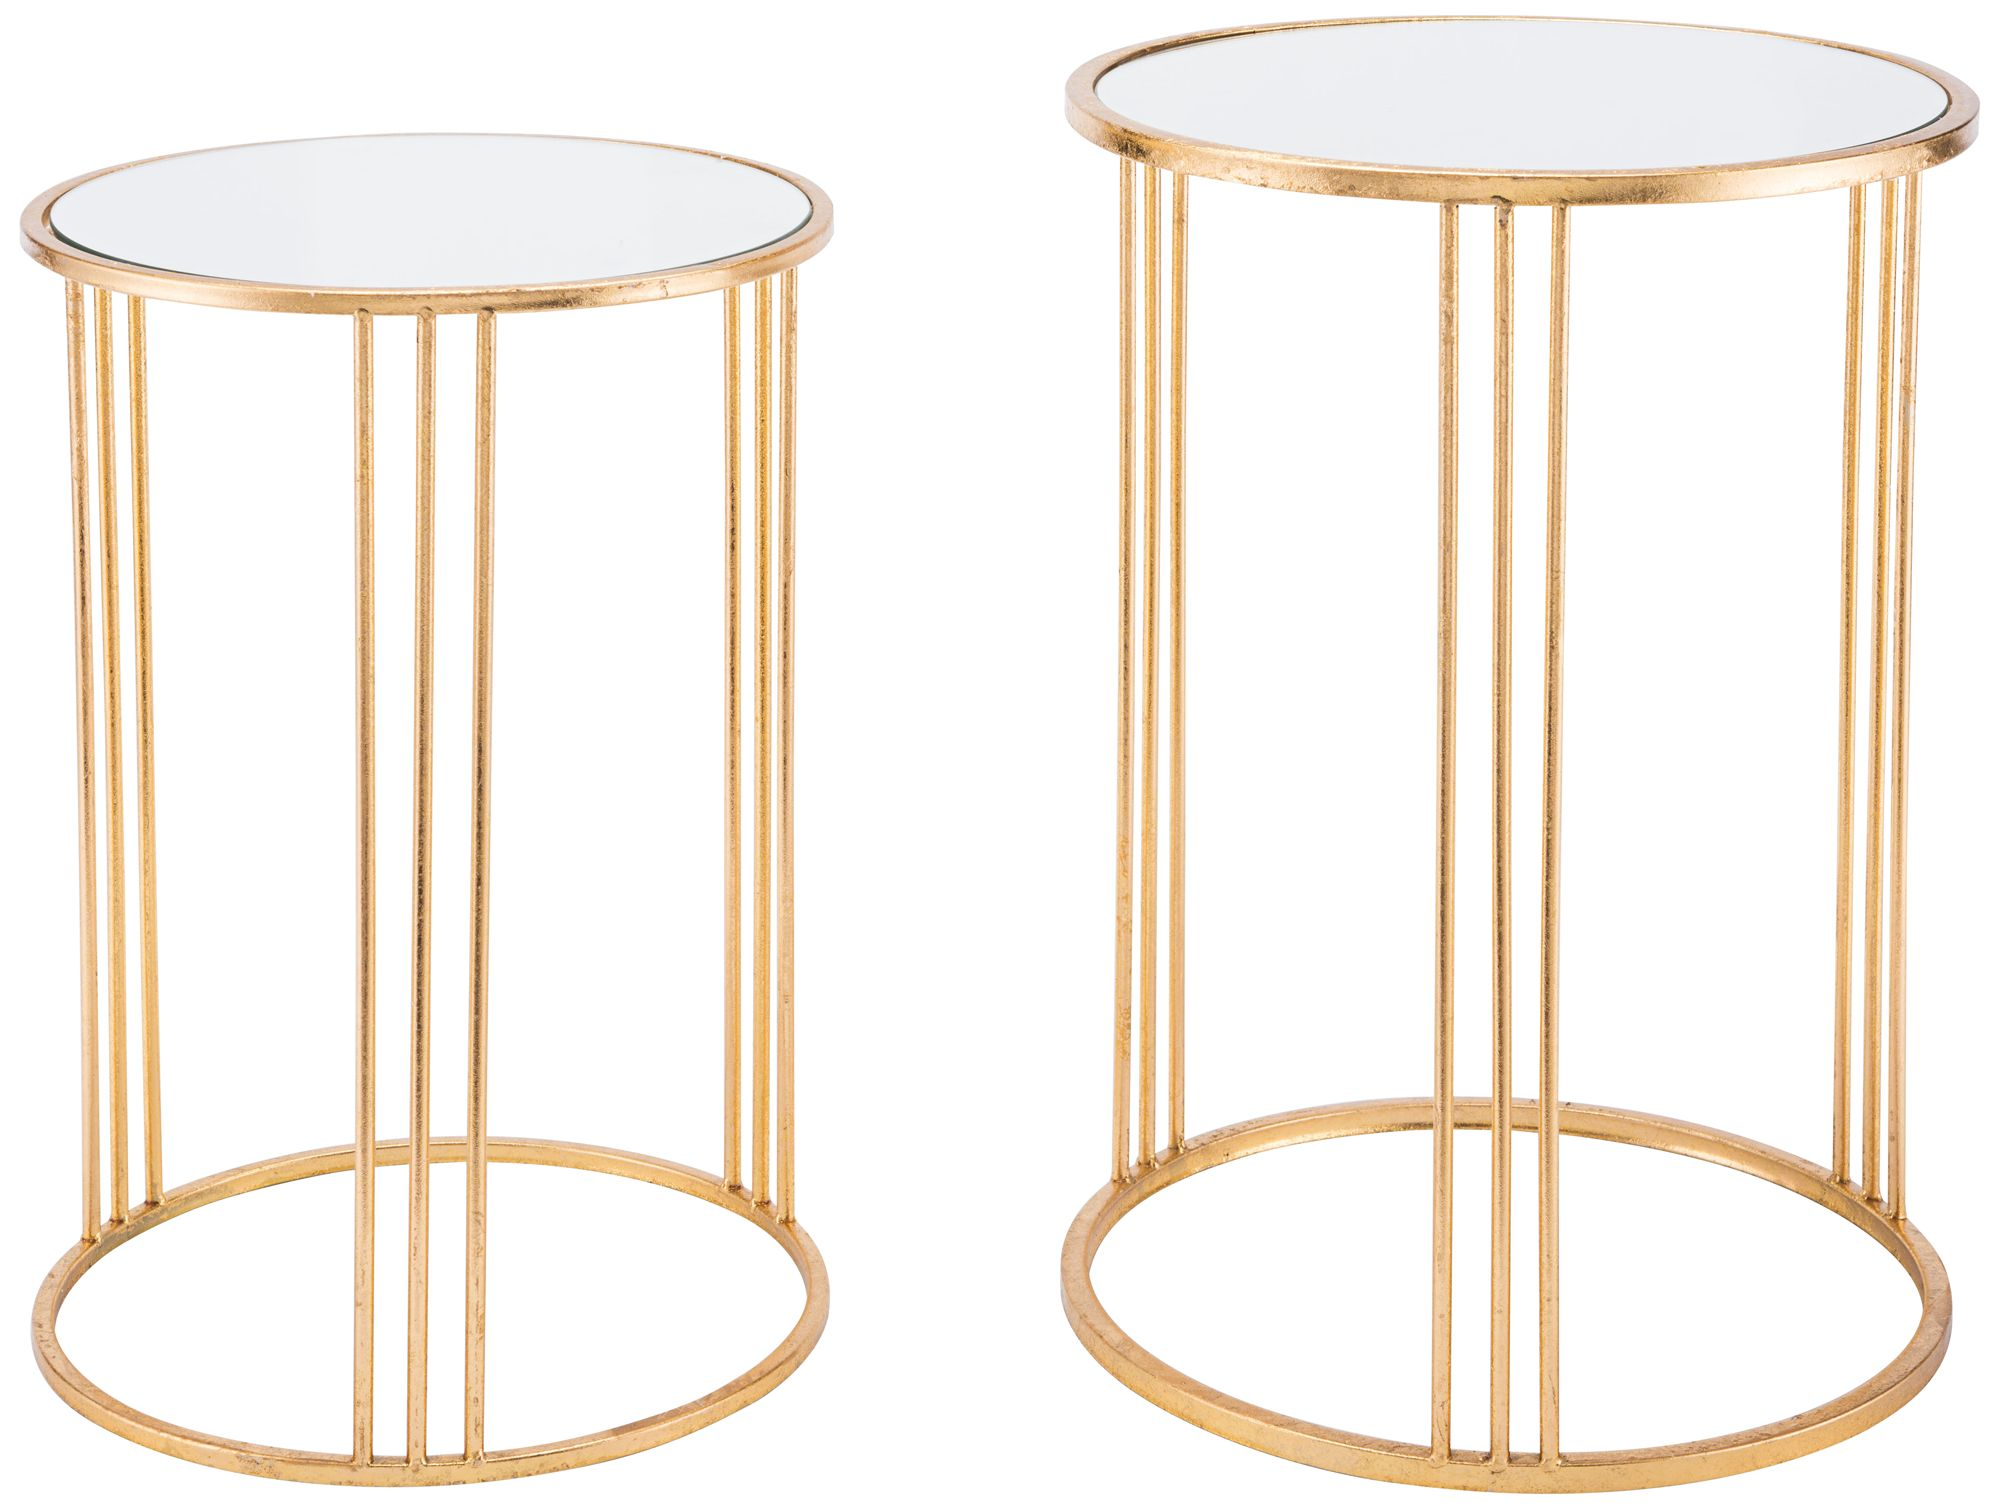 Zuo Magri Mirrored Top Gold 2 Piece Round Nesting Table Set